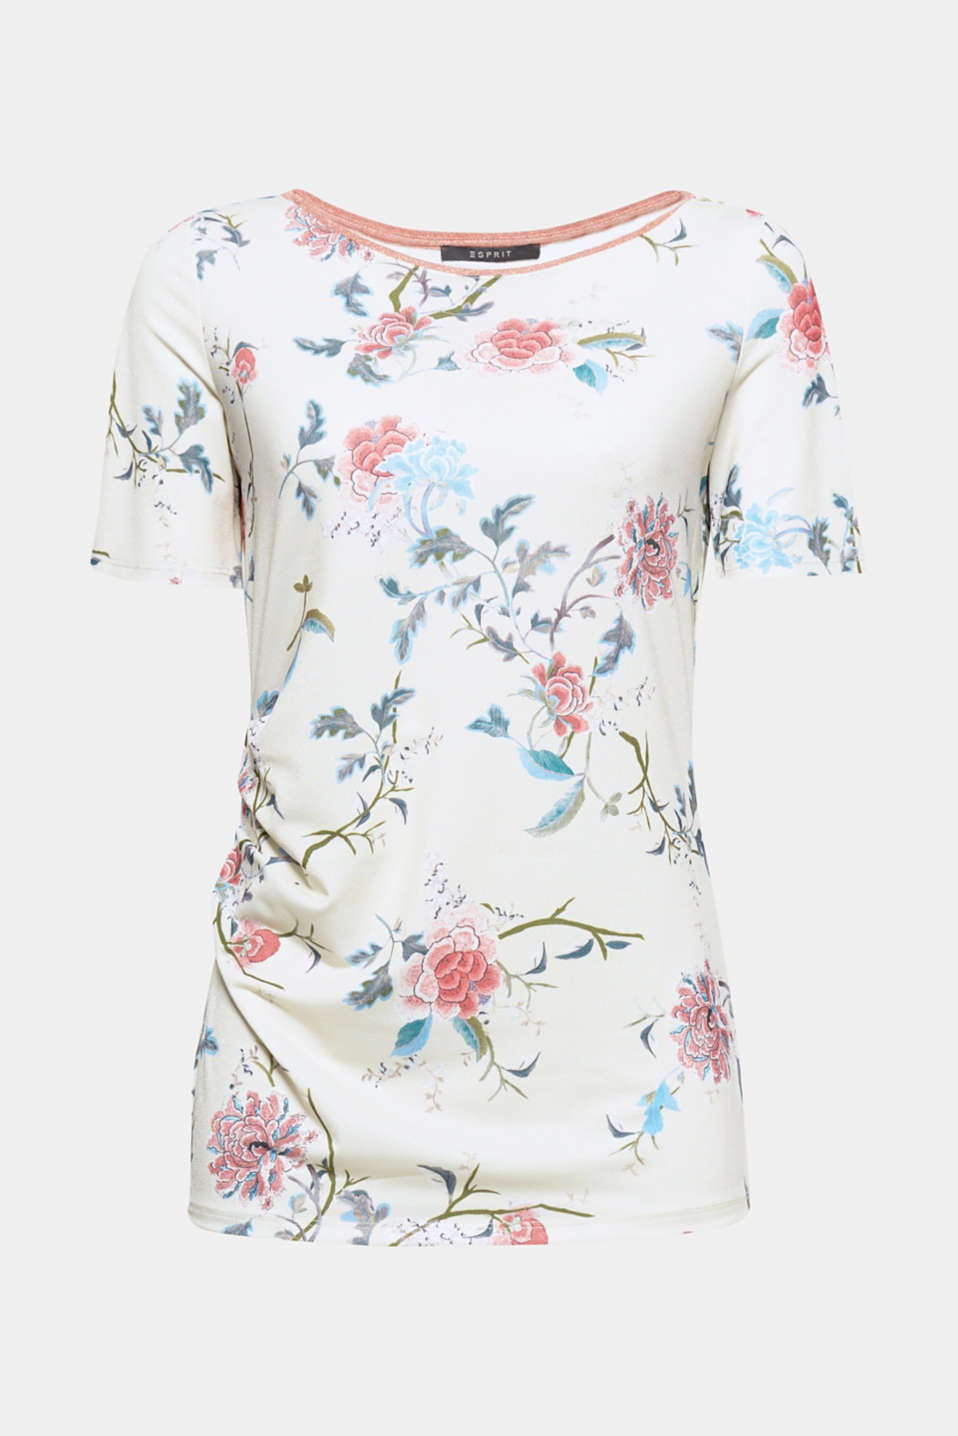 Can't get enough of colourful flowers? Then you will definitely love this stretch top with its floral print and glittery edge on the neckline!